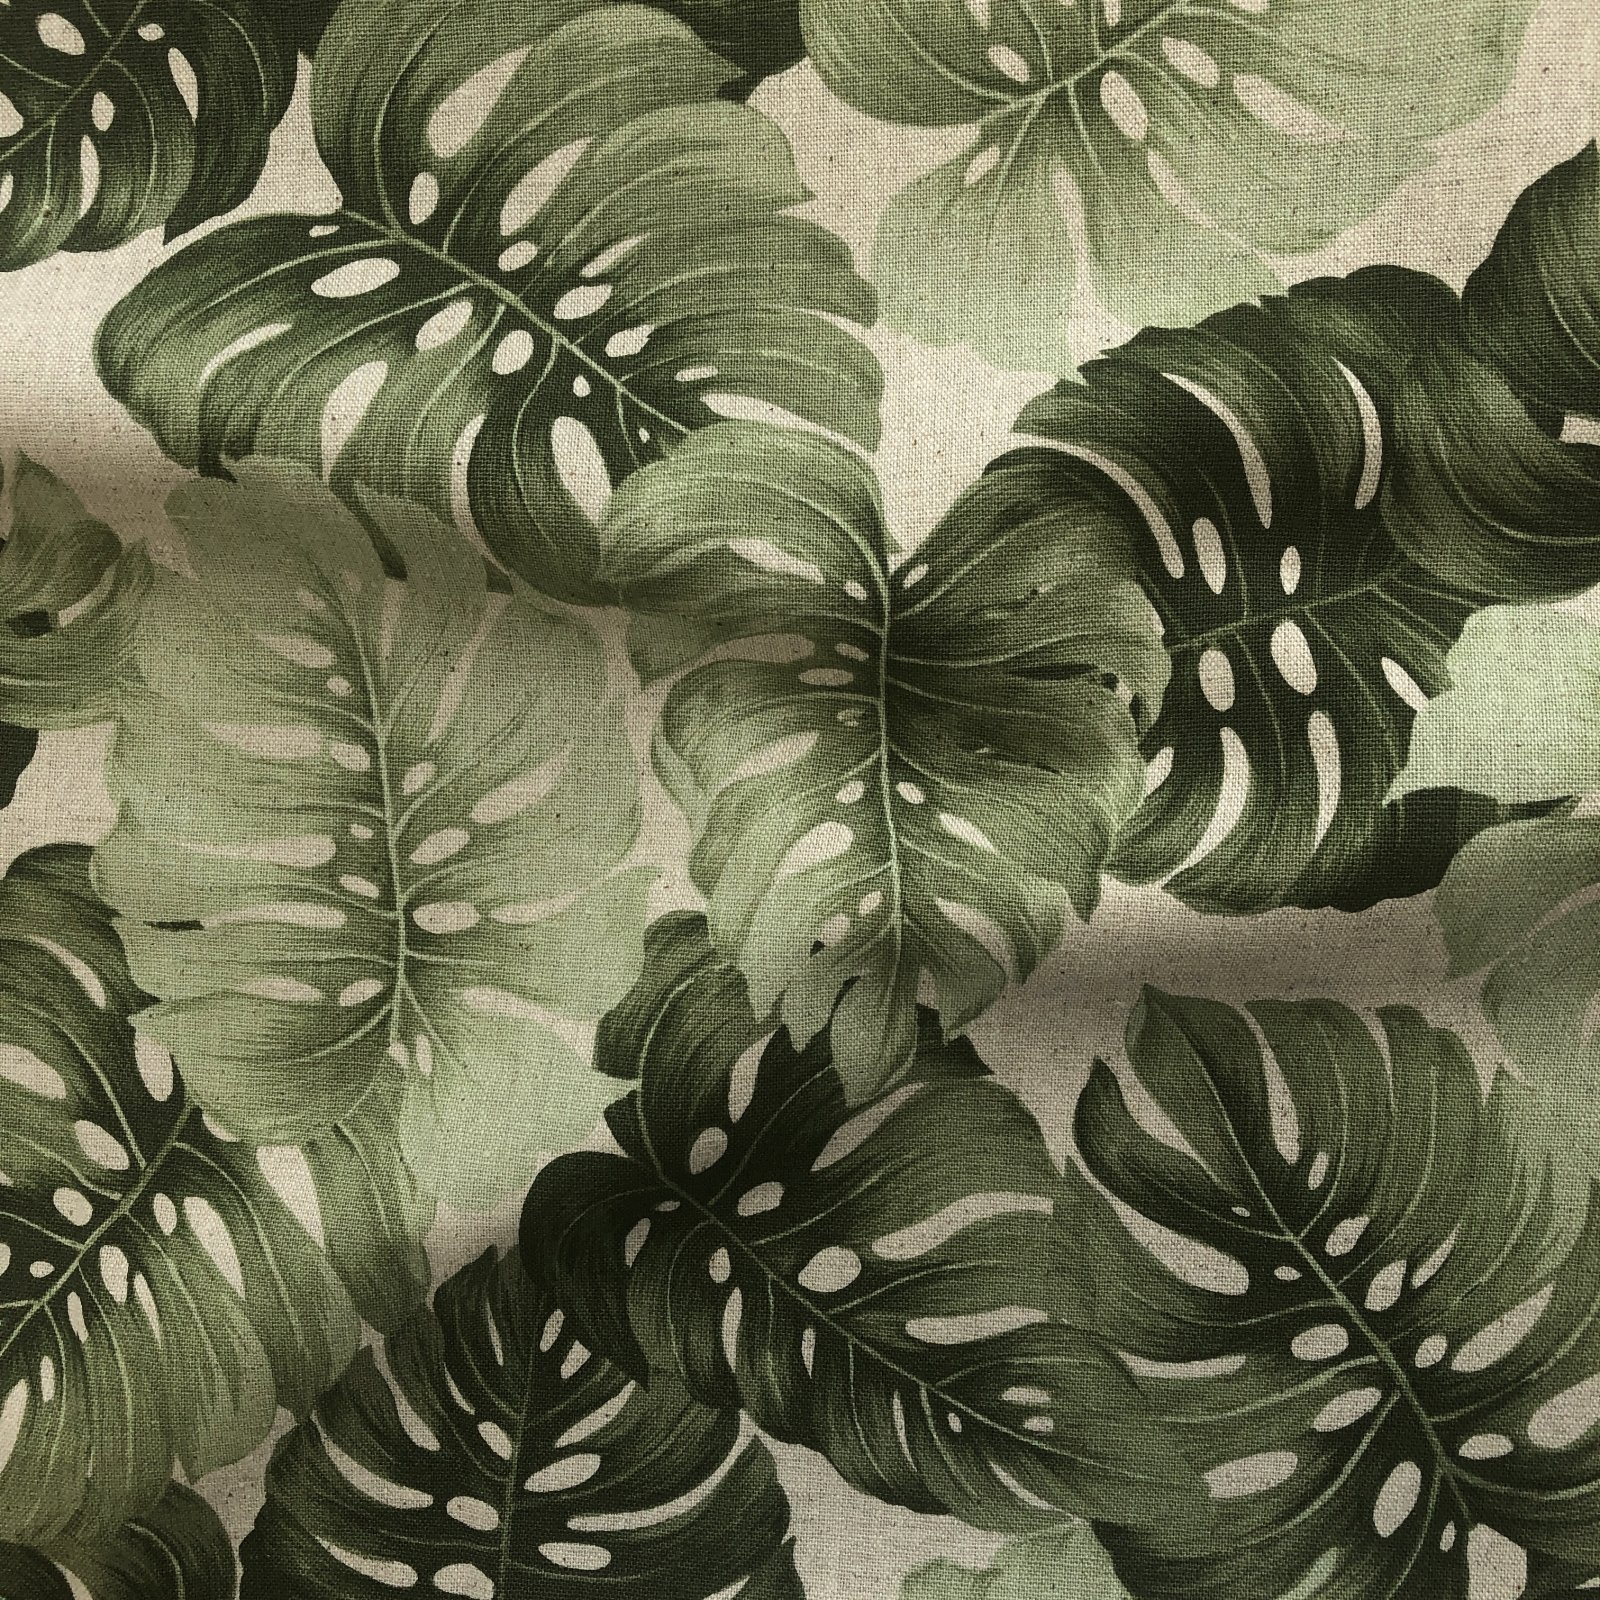 Hishei - Cotton/Linen Canvas - Monstera Leaves